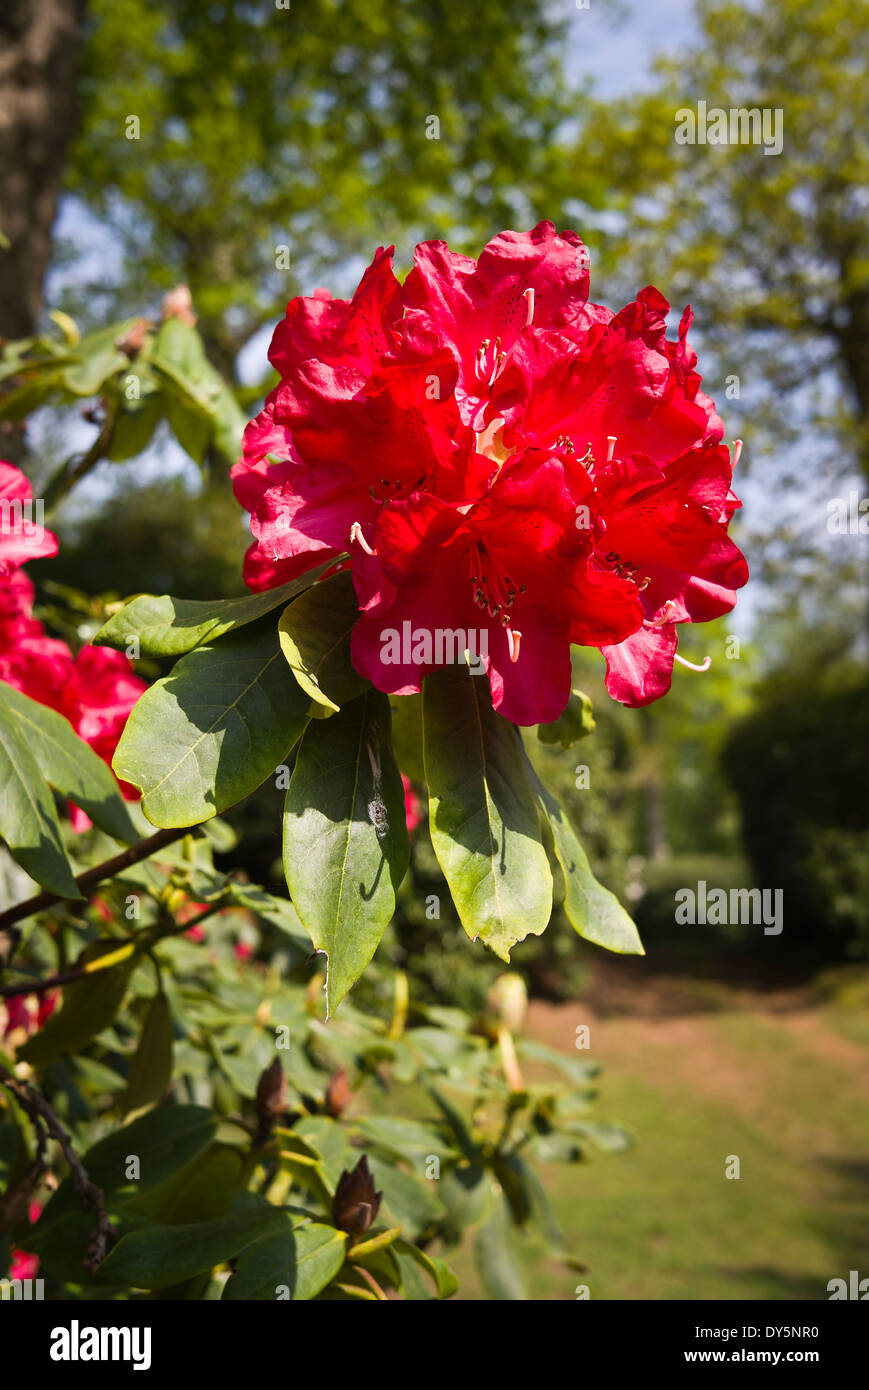 Rhododendron J.G. Millais rhododendron flower in Bowood gardesn - Stock Image